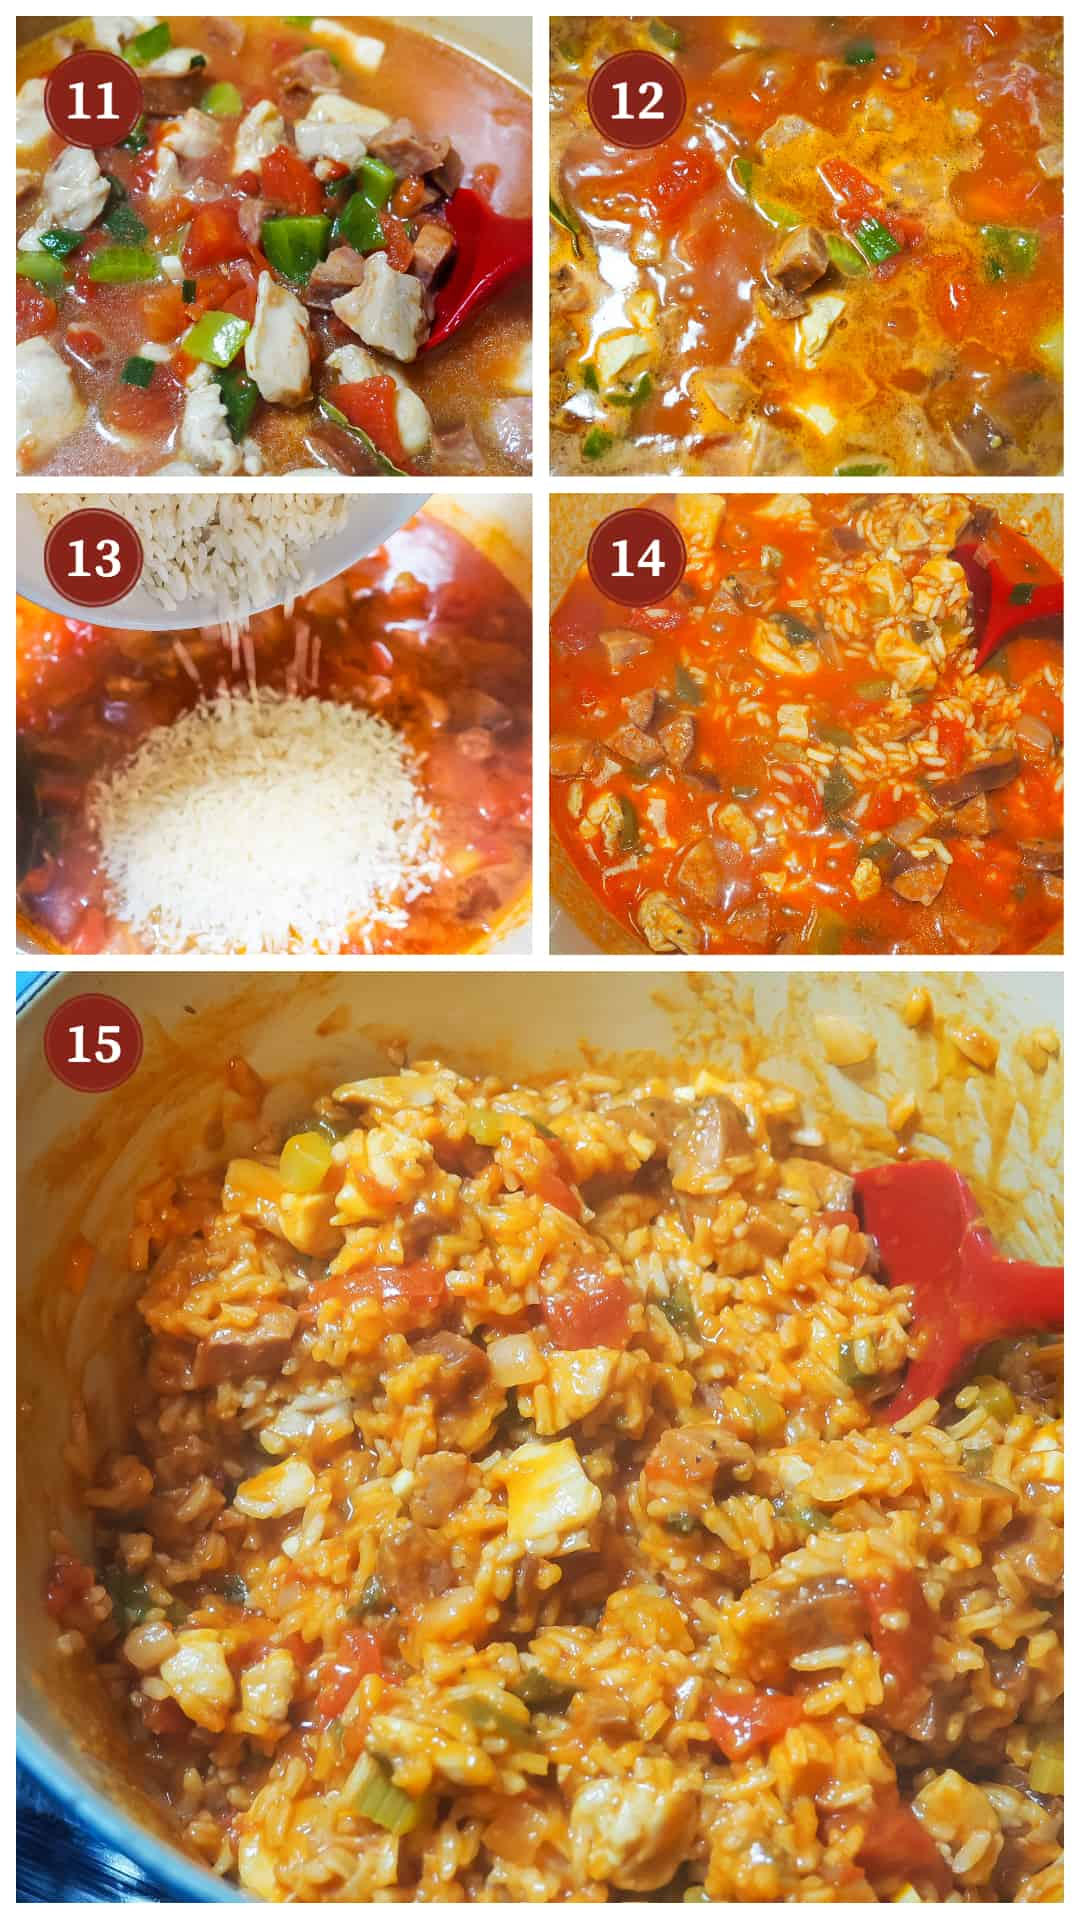 a process collage of images for making jambalaya, steps 11 - 15.